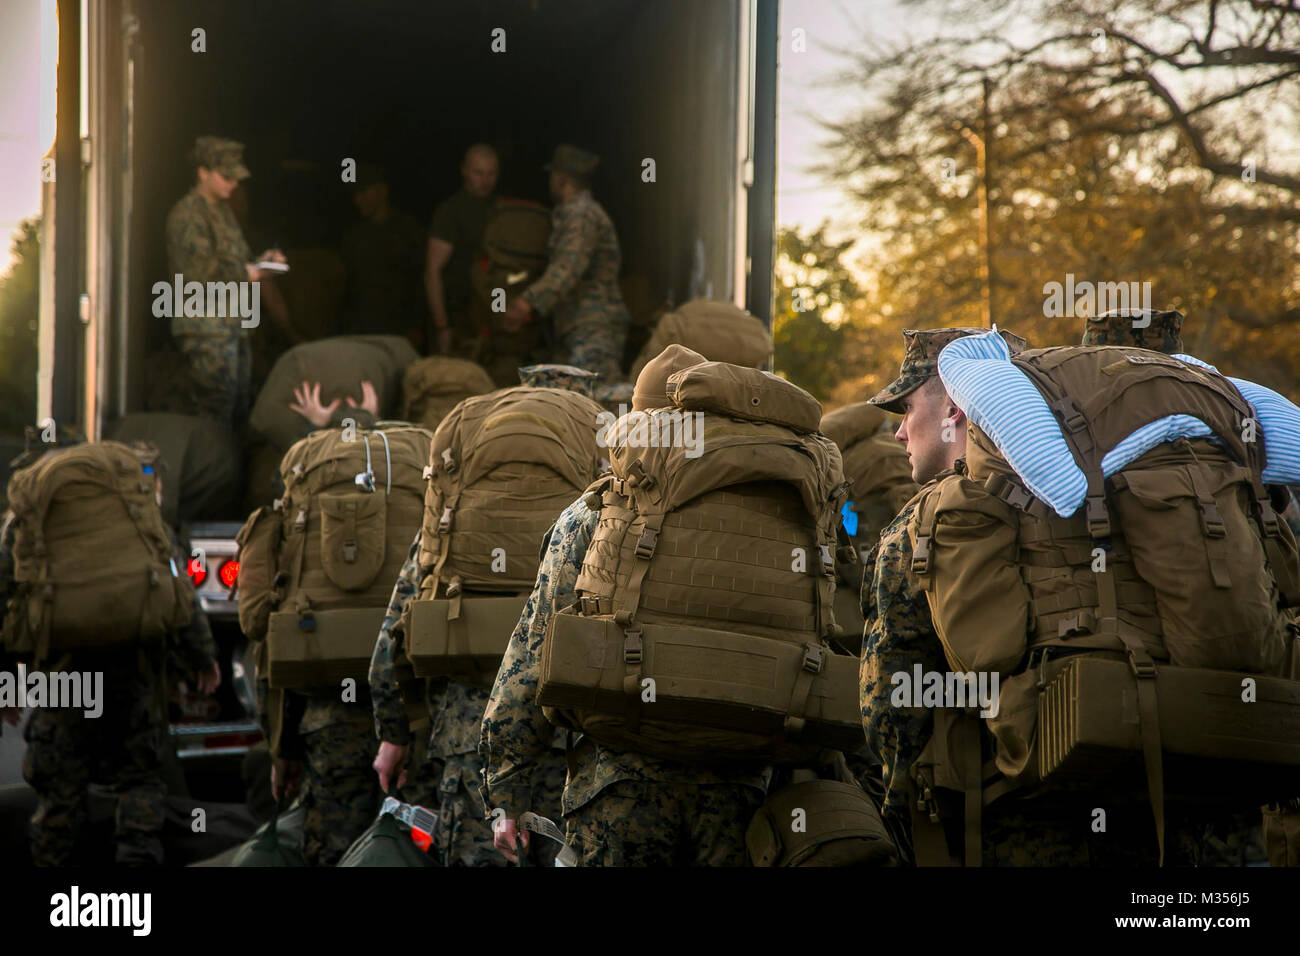 U.S. Marines and Sailors with the 26th Marine Expeditionary Unit (MEU) load their equipment onto a truck prior to - Stock Image